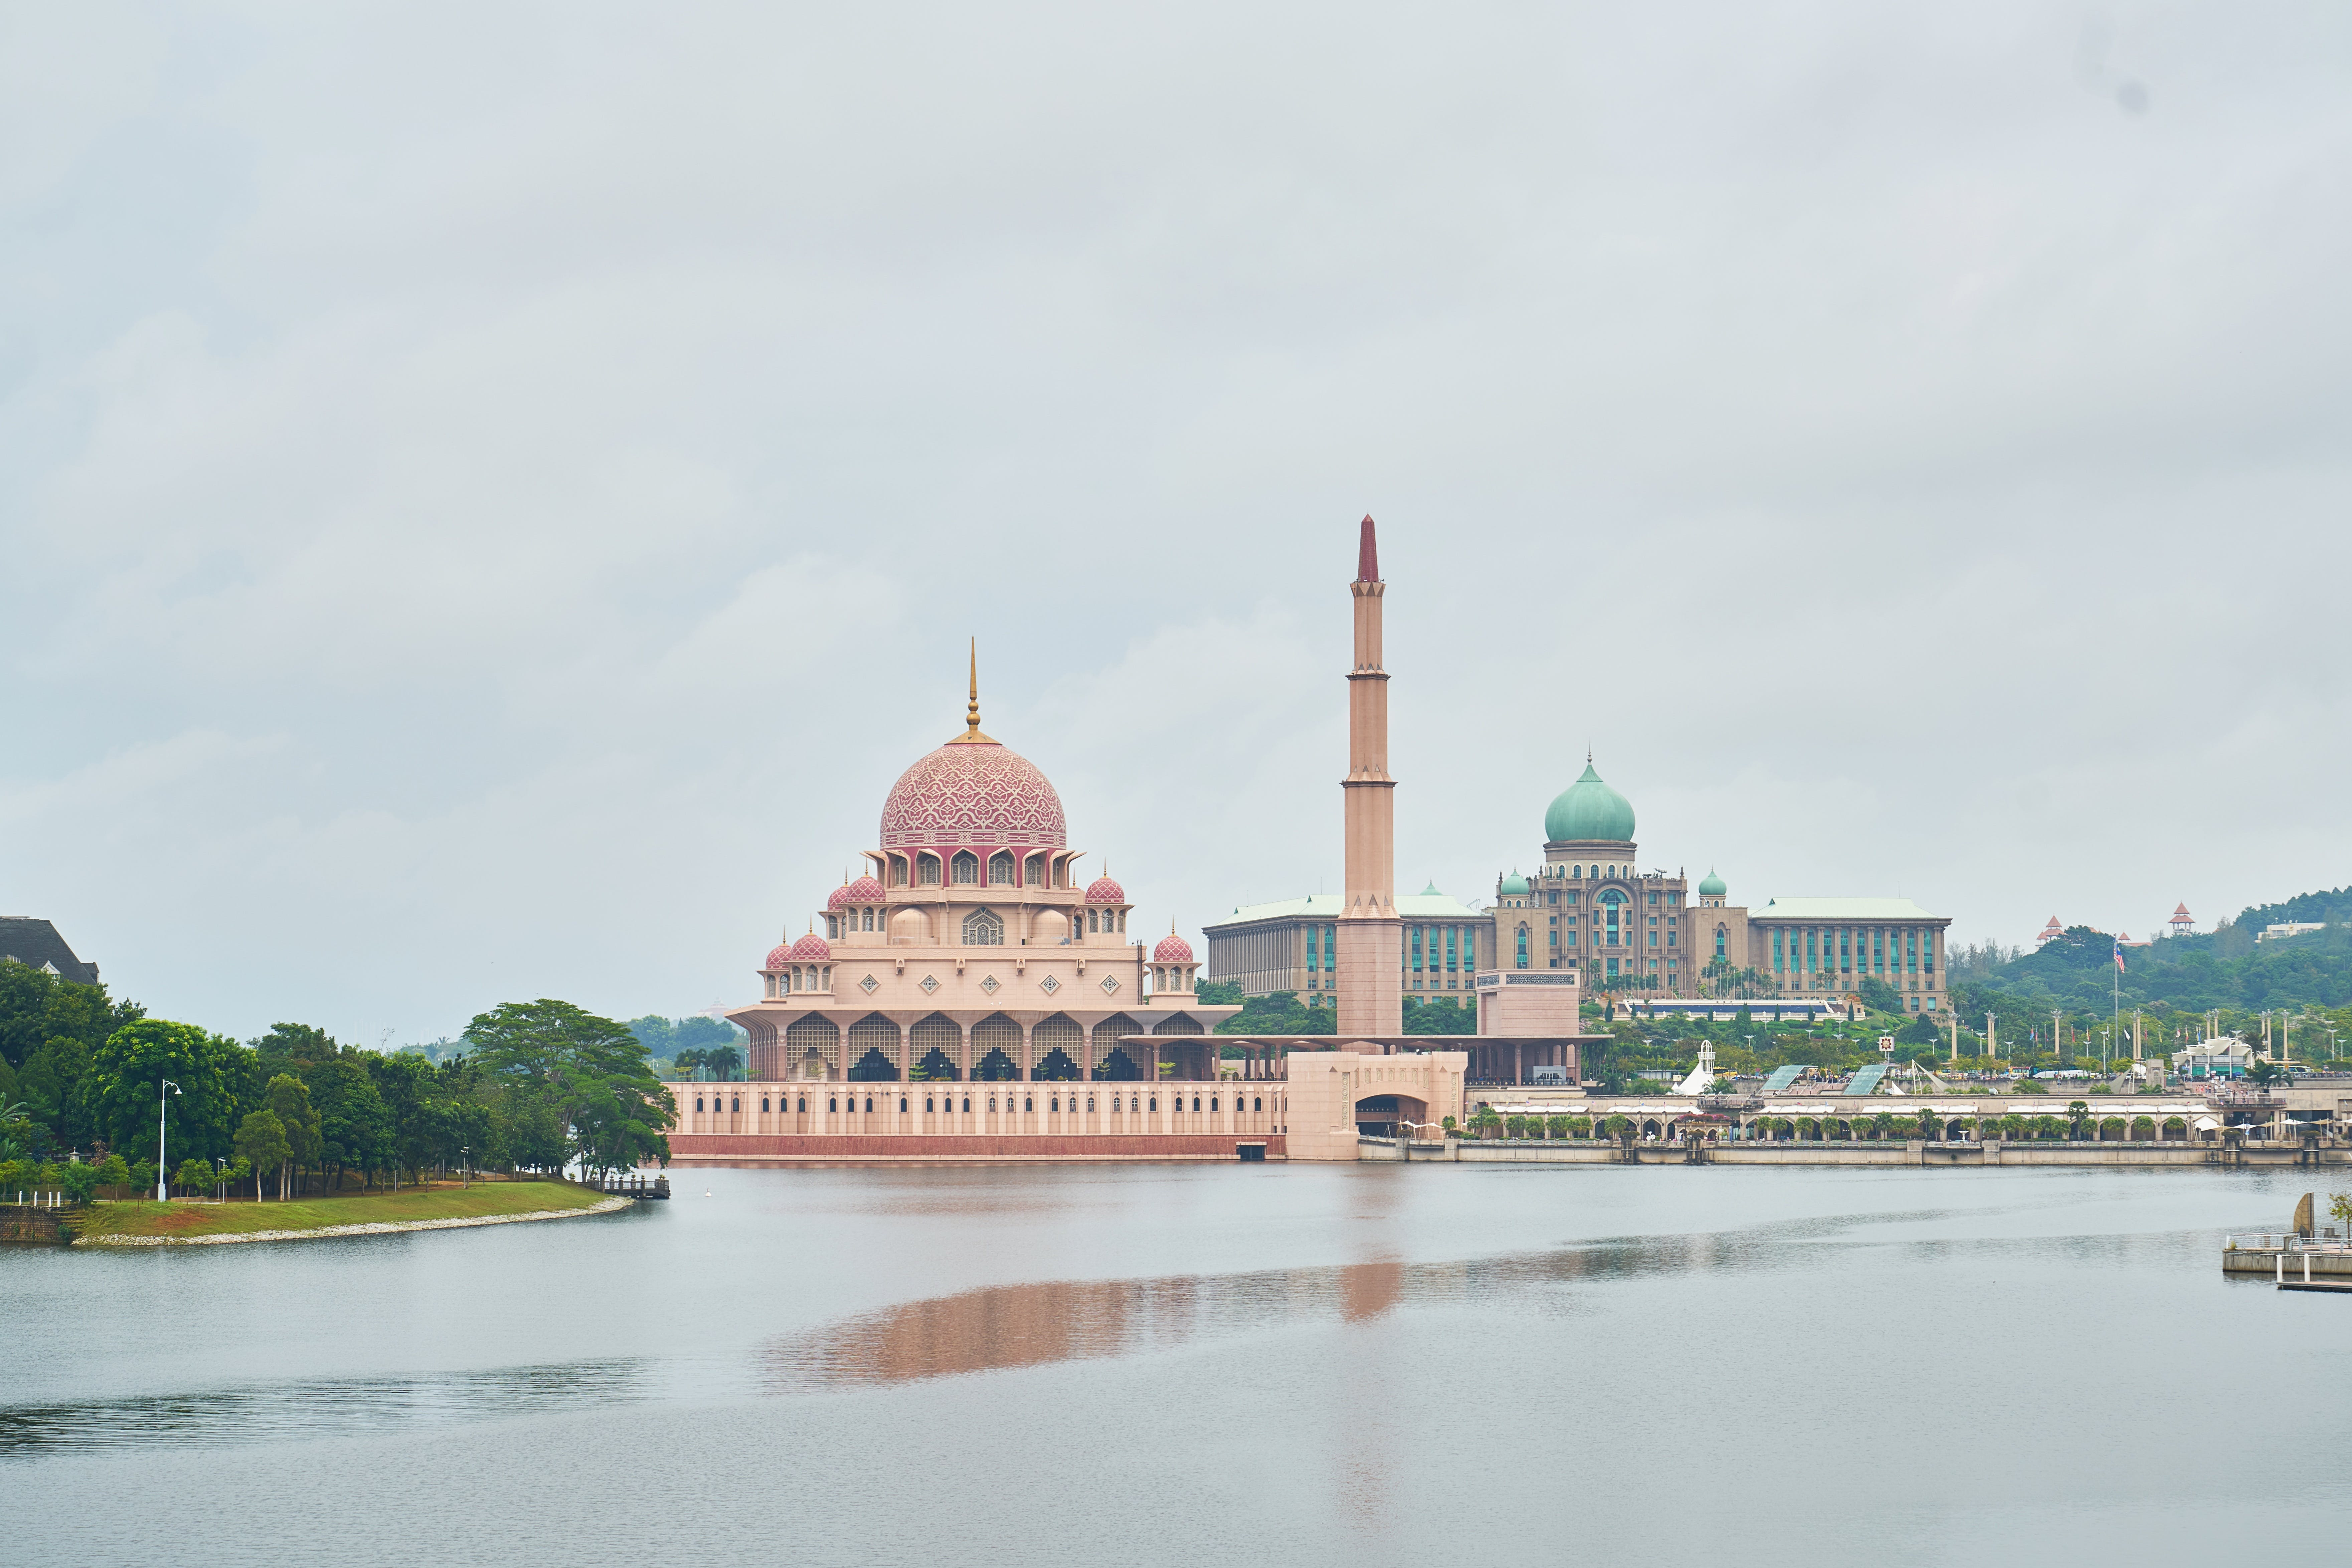 Brown Mosque Beside Tower Near Body of Water